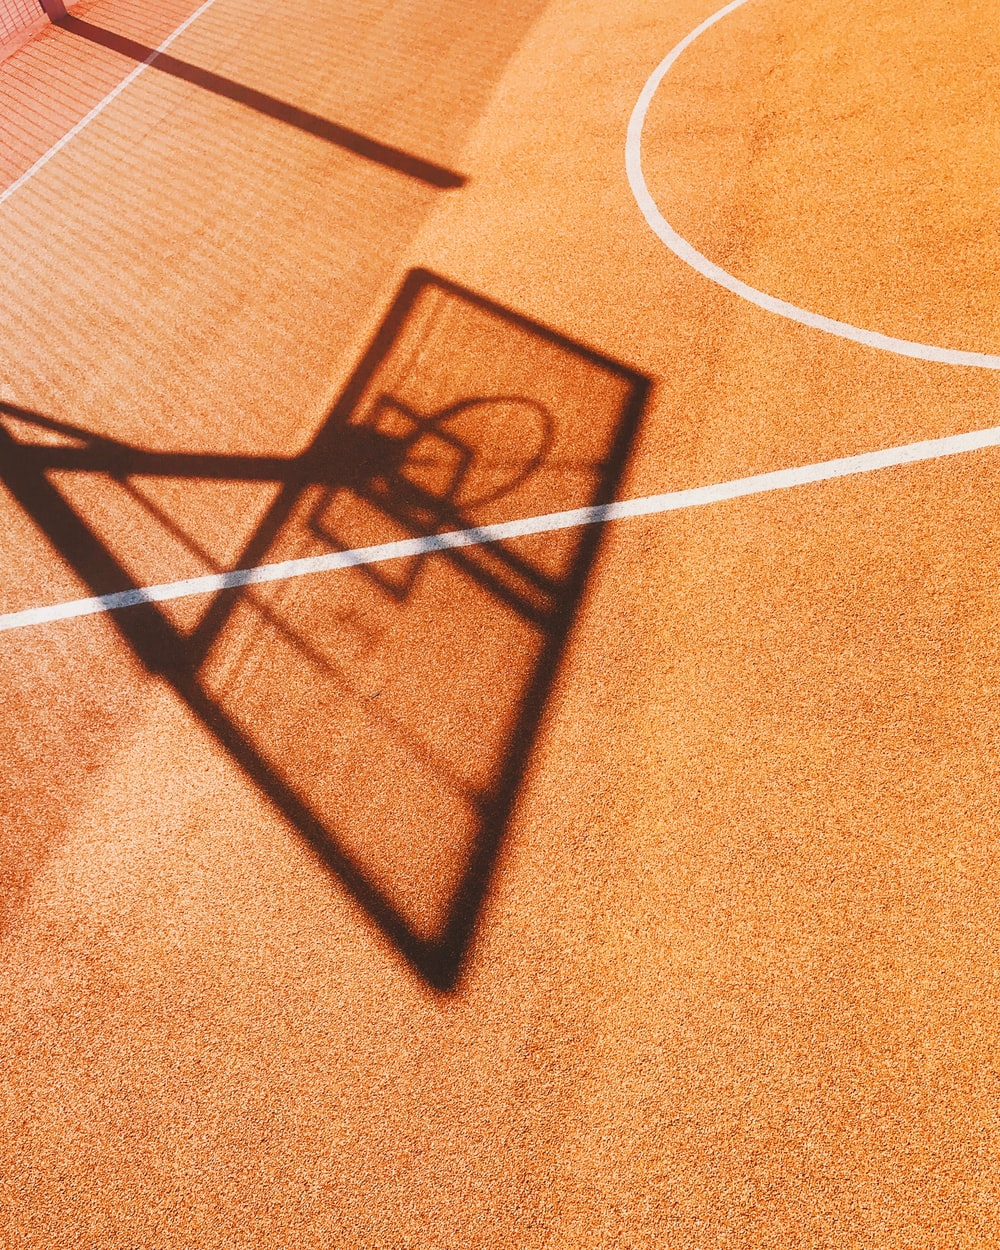 shadow of basketball hoop